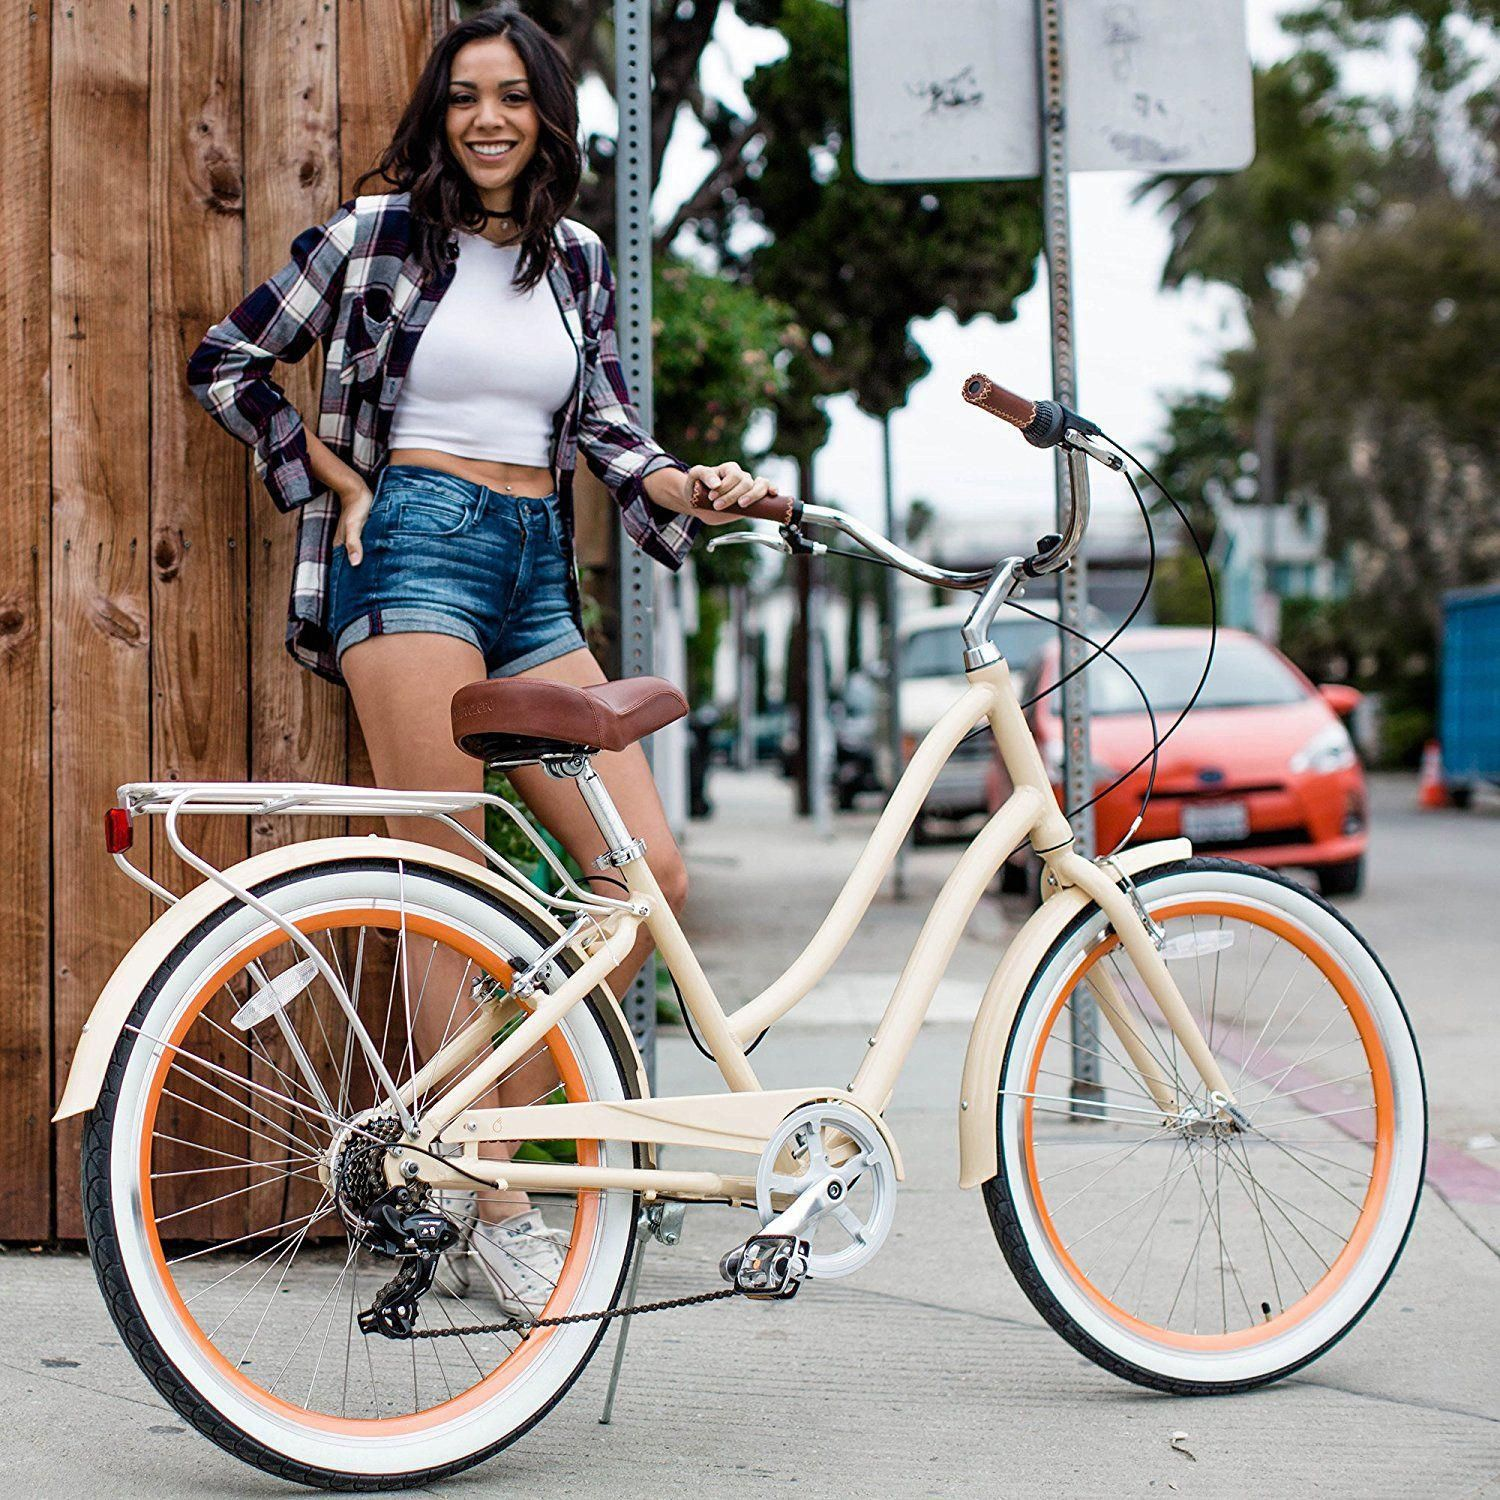 The 10 Best Hybrid Bikes for Women to Buy in 2020 – Sportsly